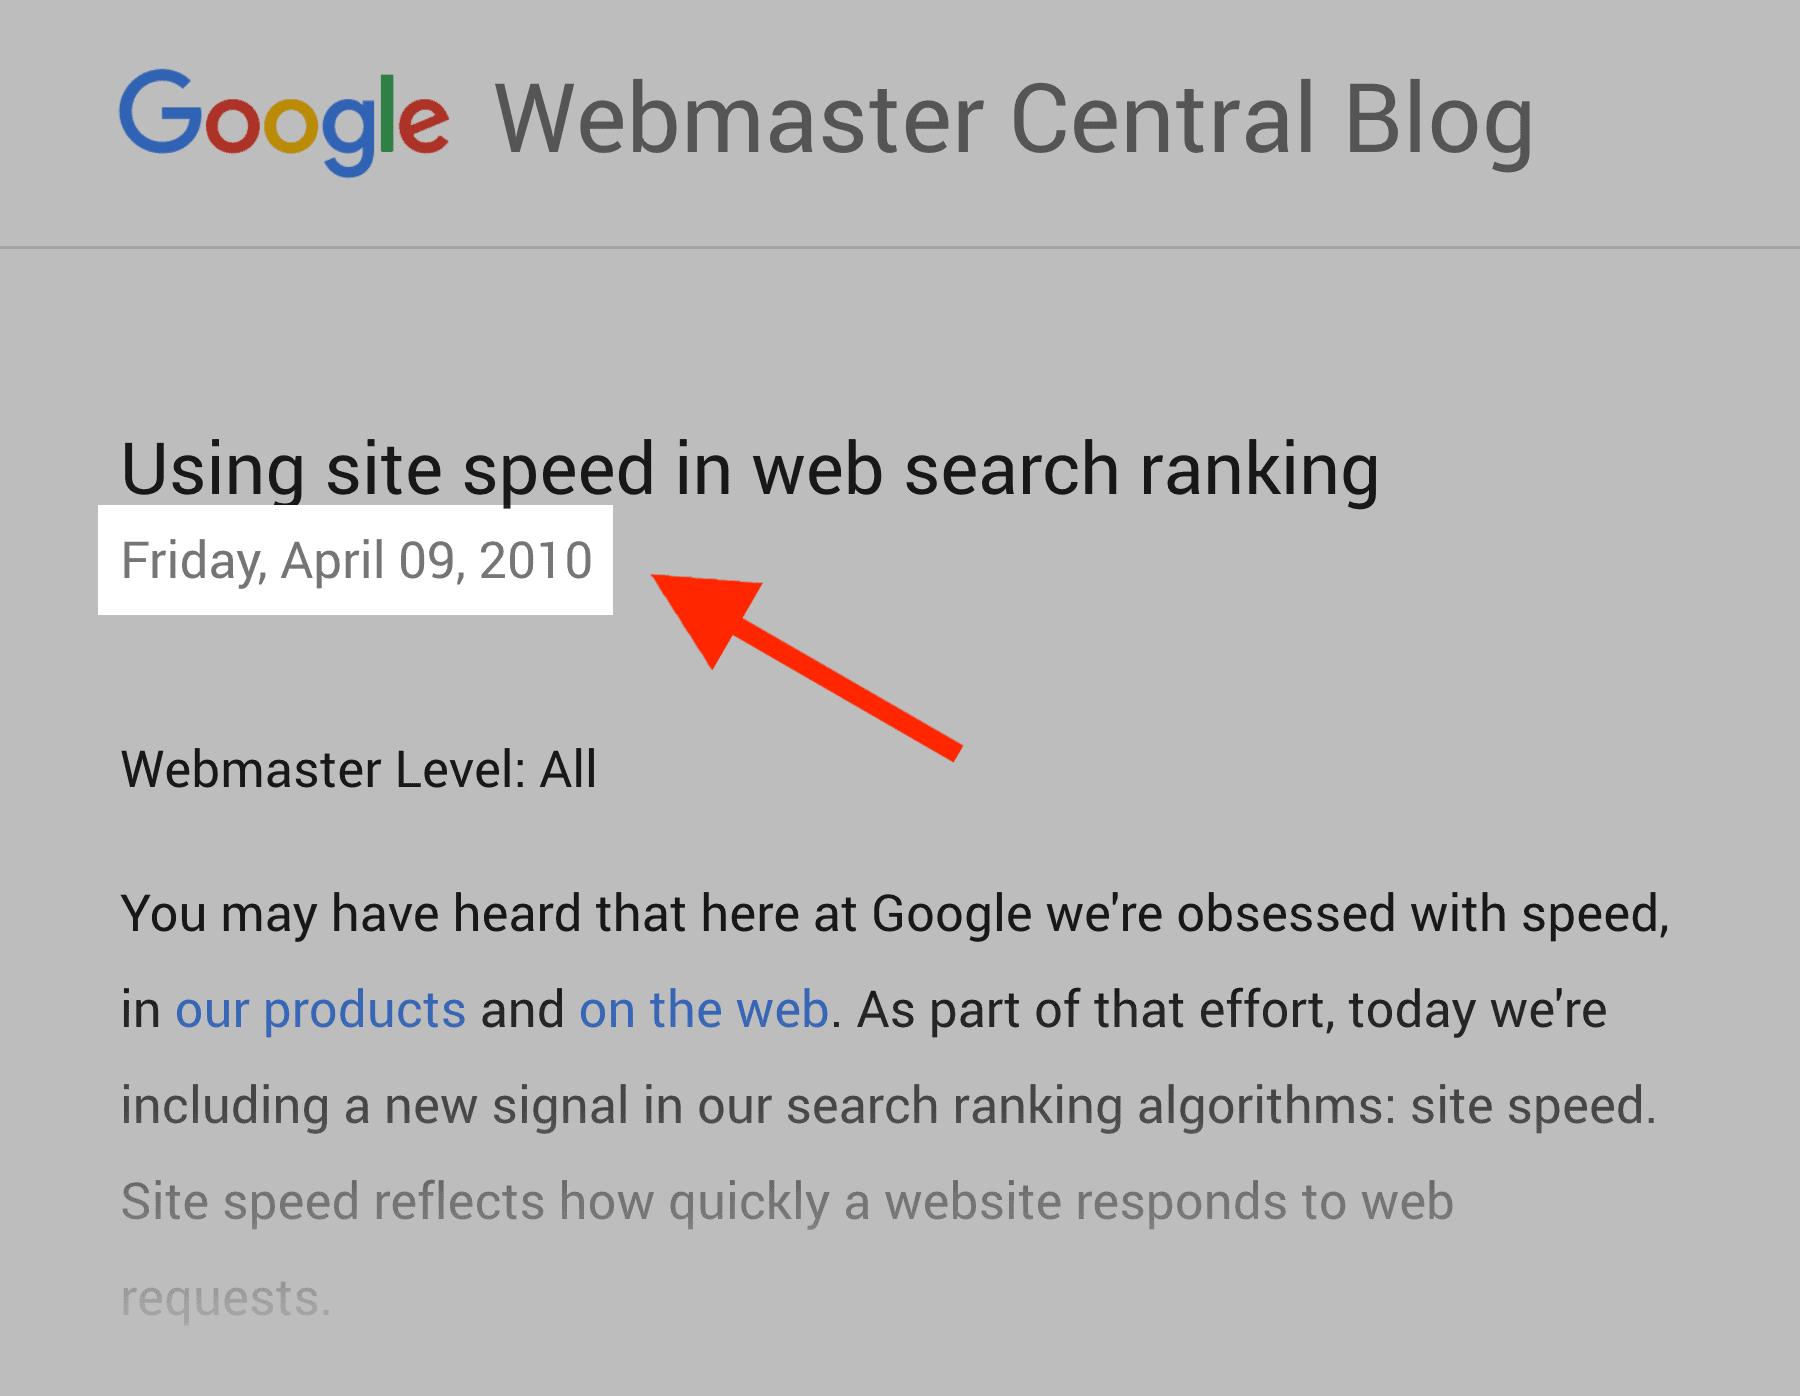 Site speed a factor - Since 2010